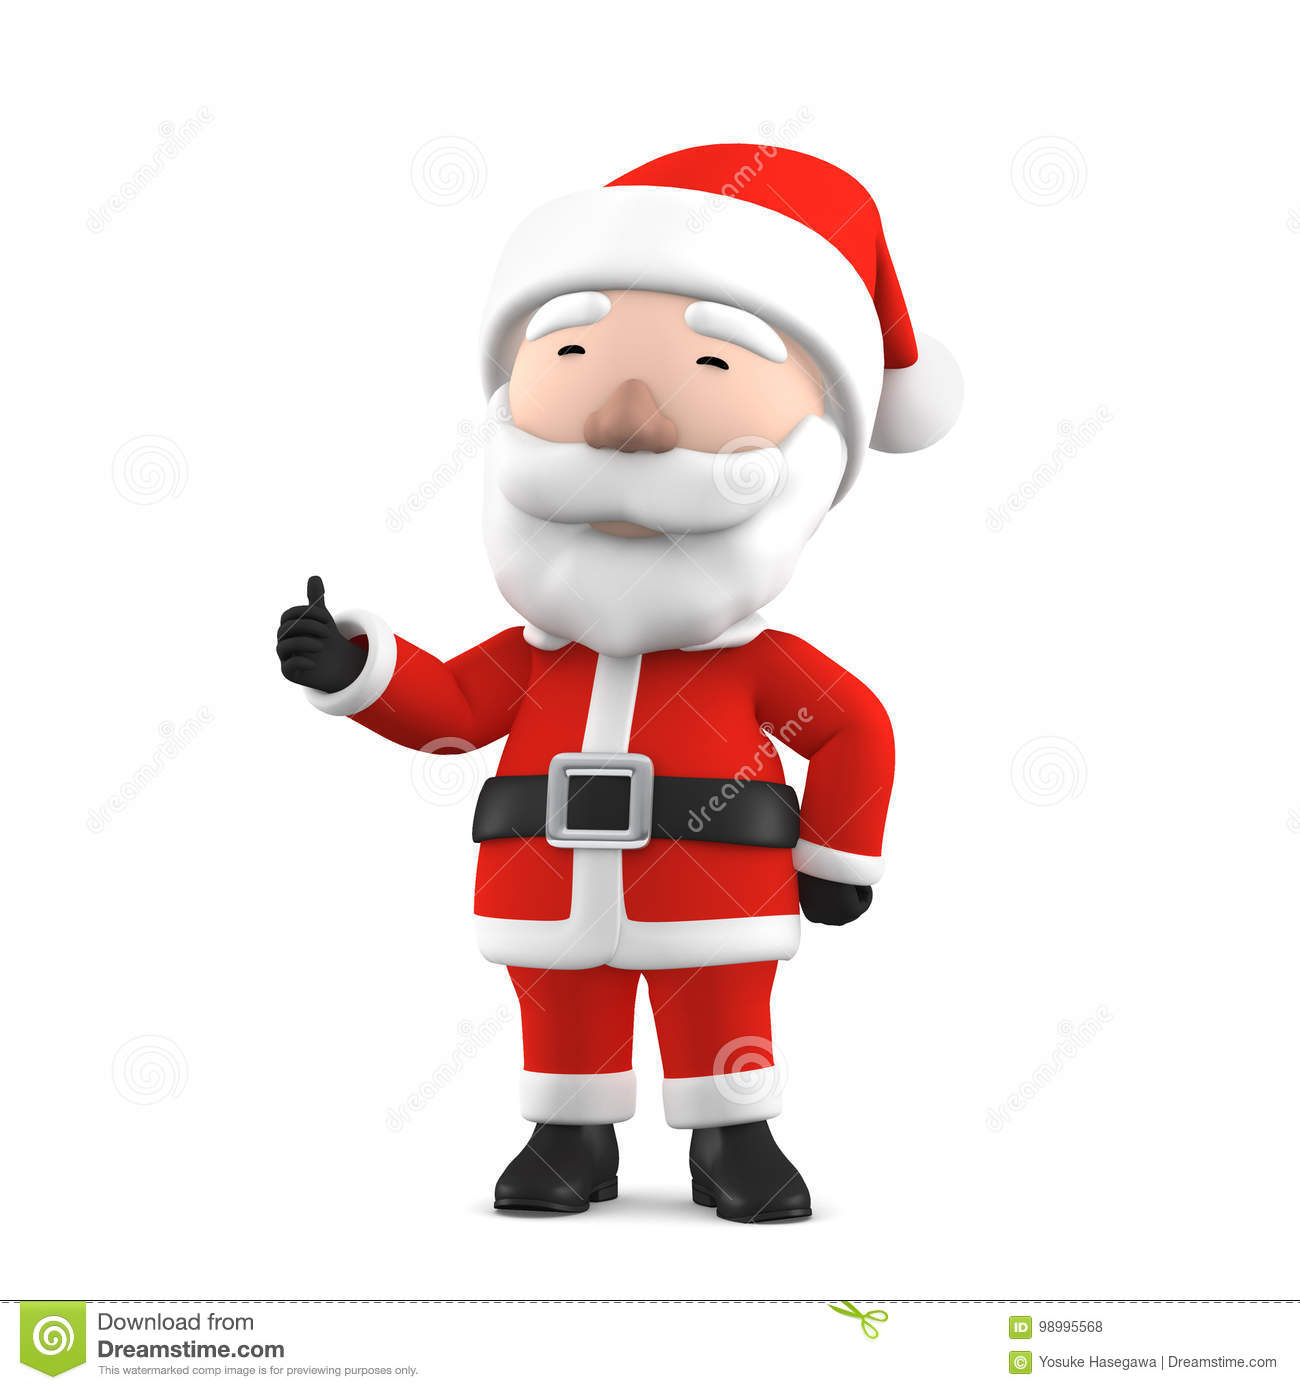 hight resolution of 3d render of santa claus happy christmas icon funny cartoon christmas grandpa symbol isolated on white background